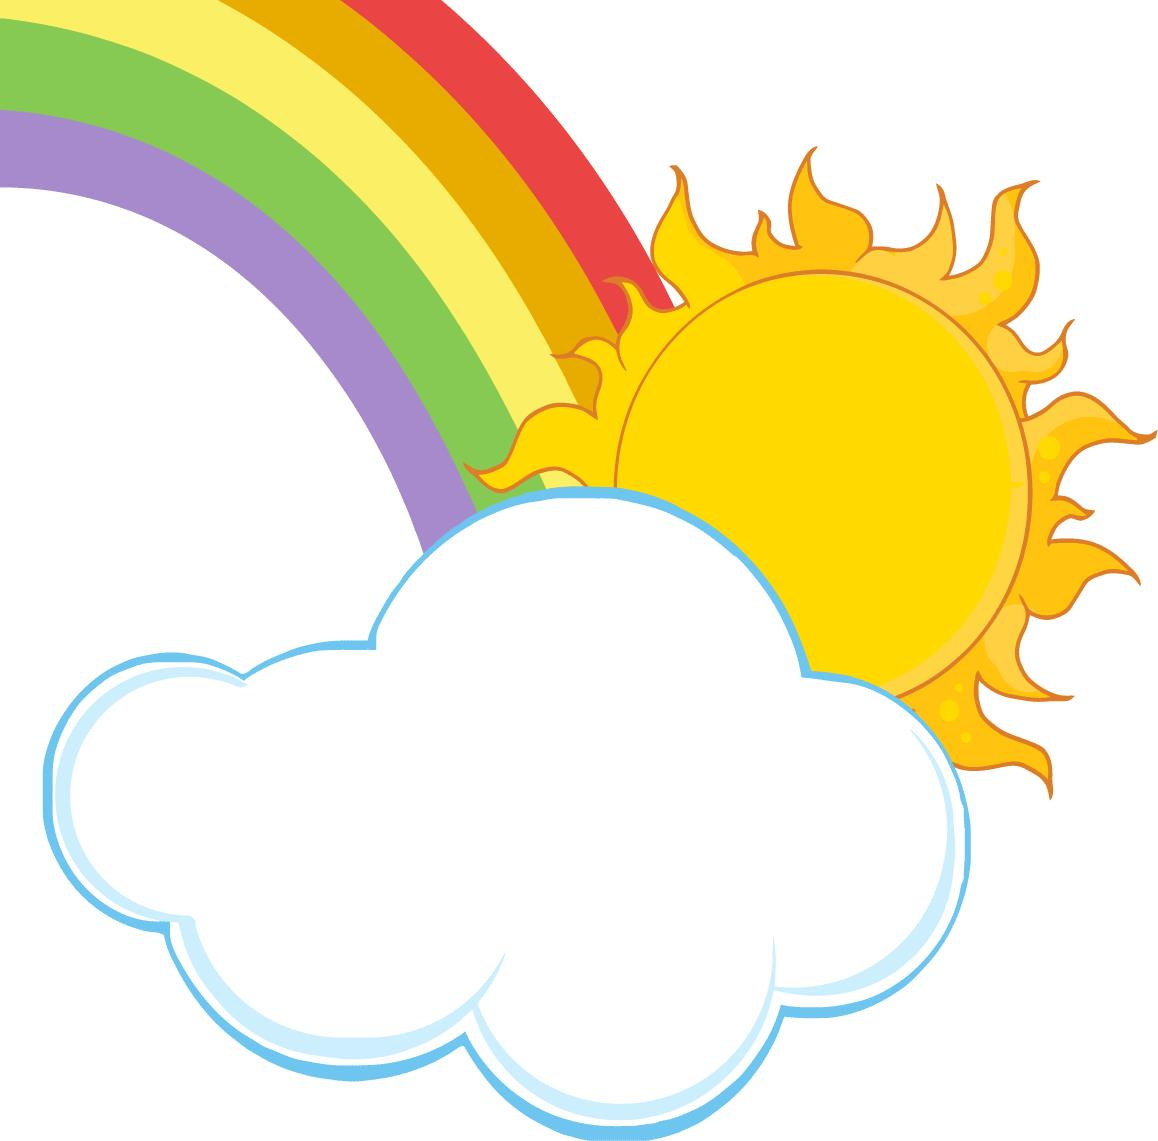 Drawn rainbow cloud clip art Images Sun Rays Free sun%20rays%20through%20clouds%20drawing